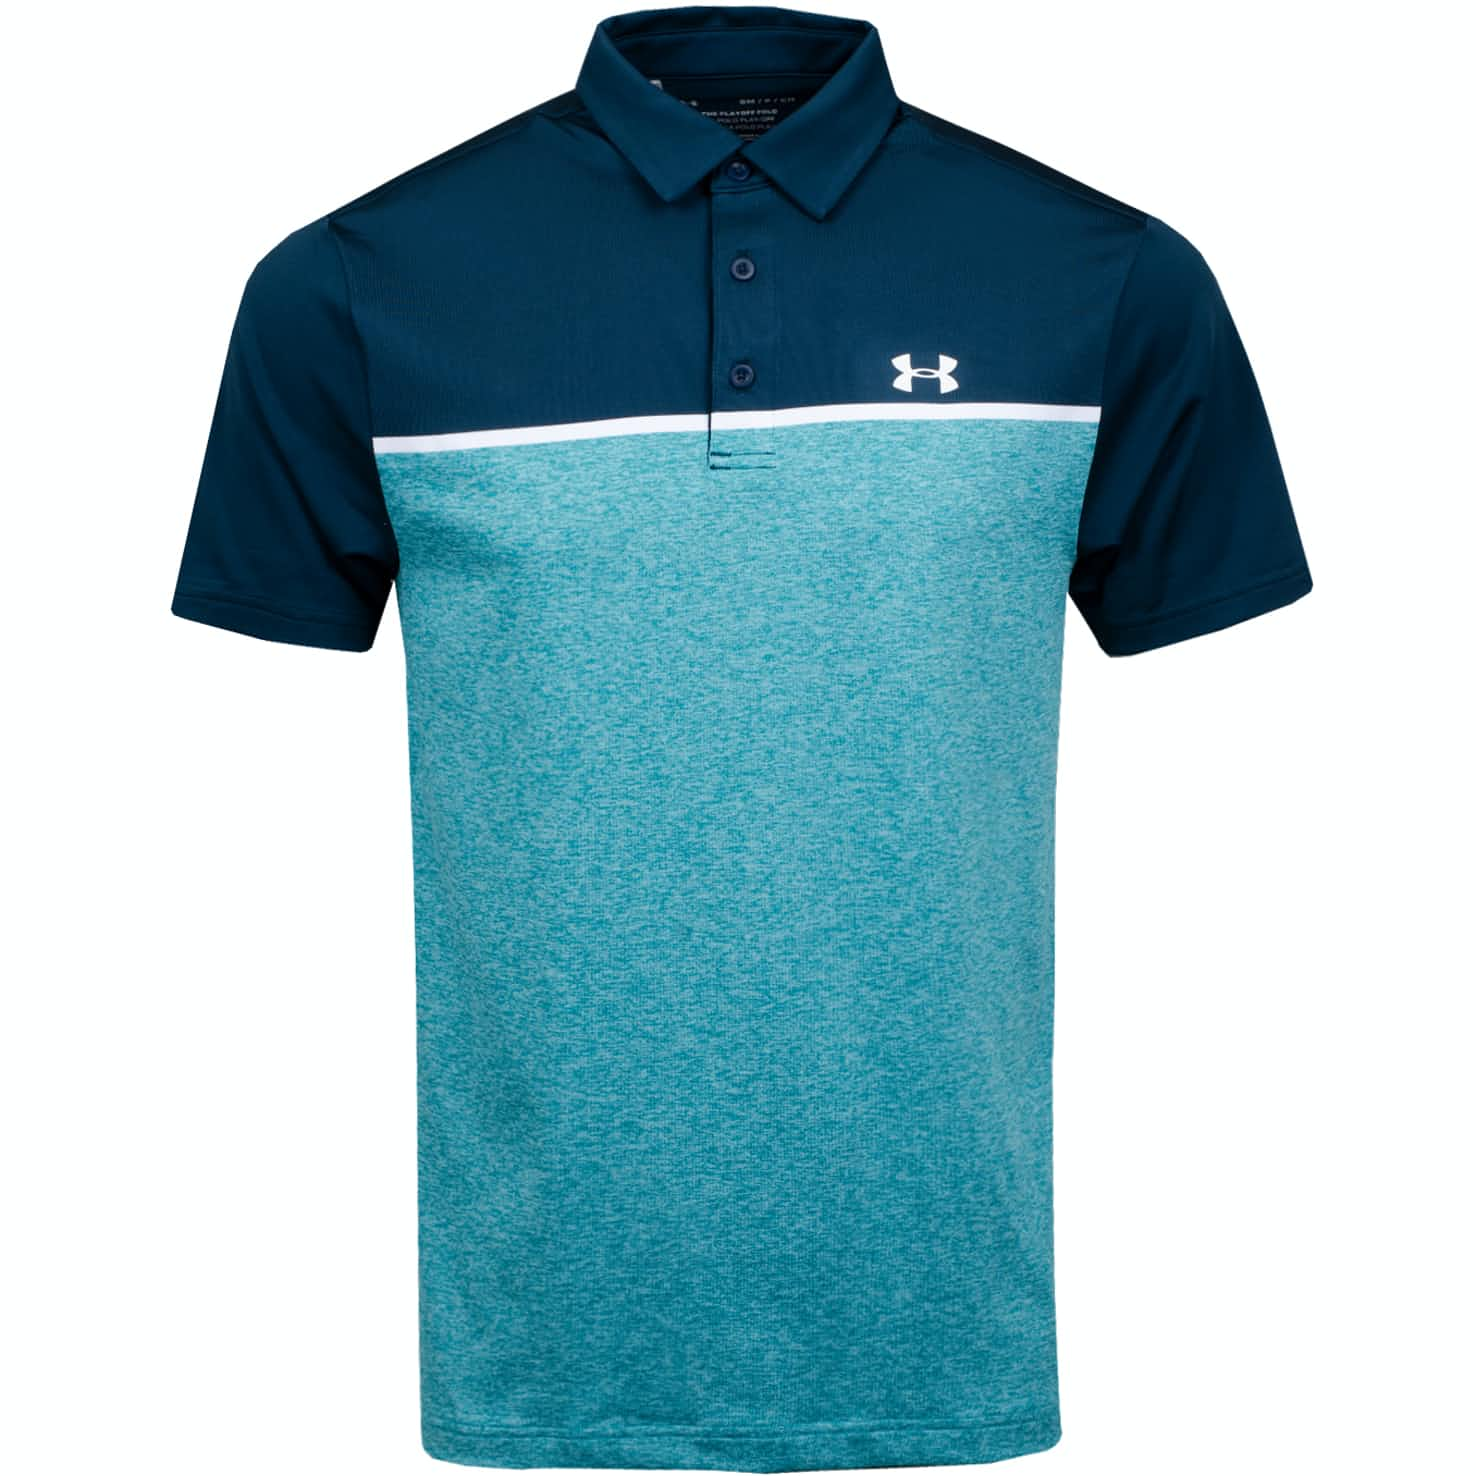 Under Armour Playoff Polo 2.0 Tandem Teal/White - AW19